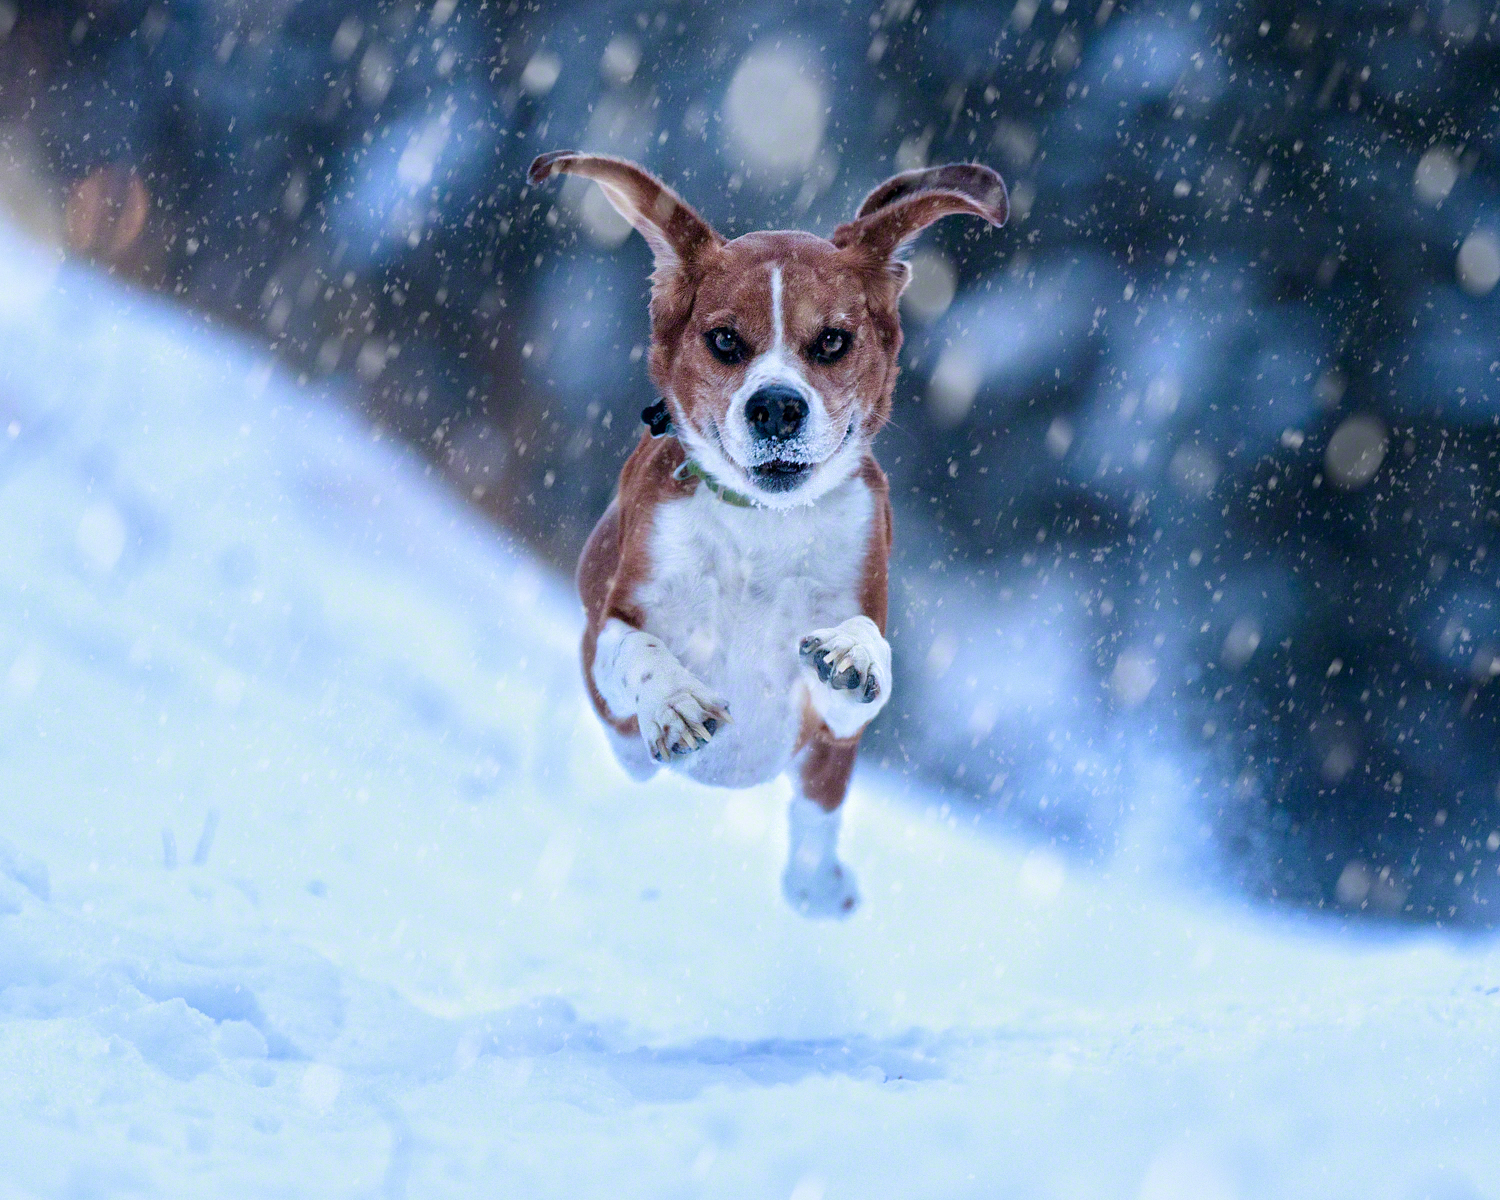 Photograph of a beagle running through the snow in Kananaskis Country Alberta